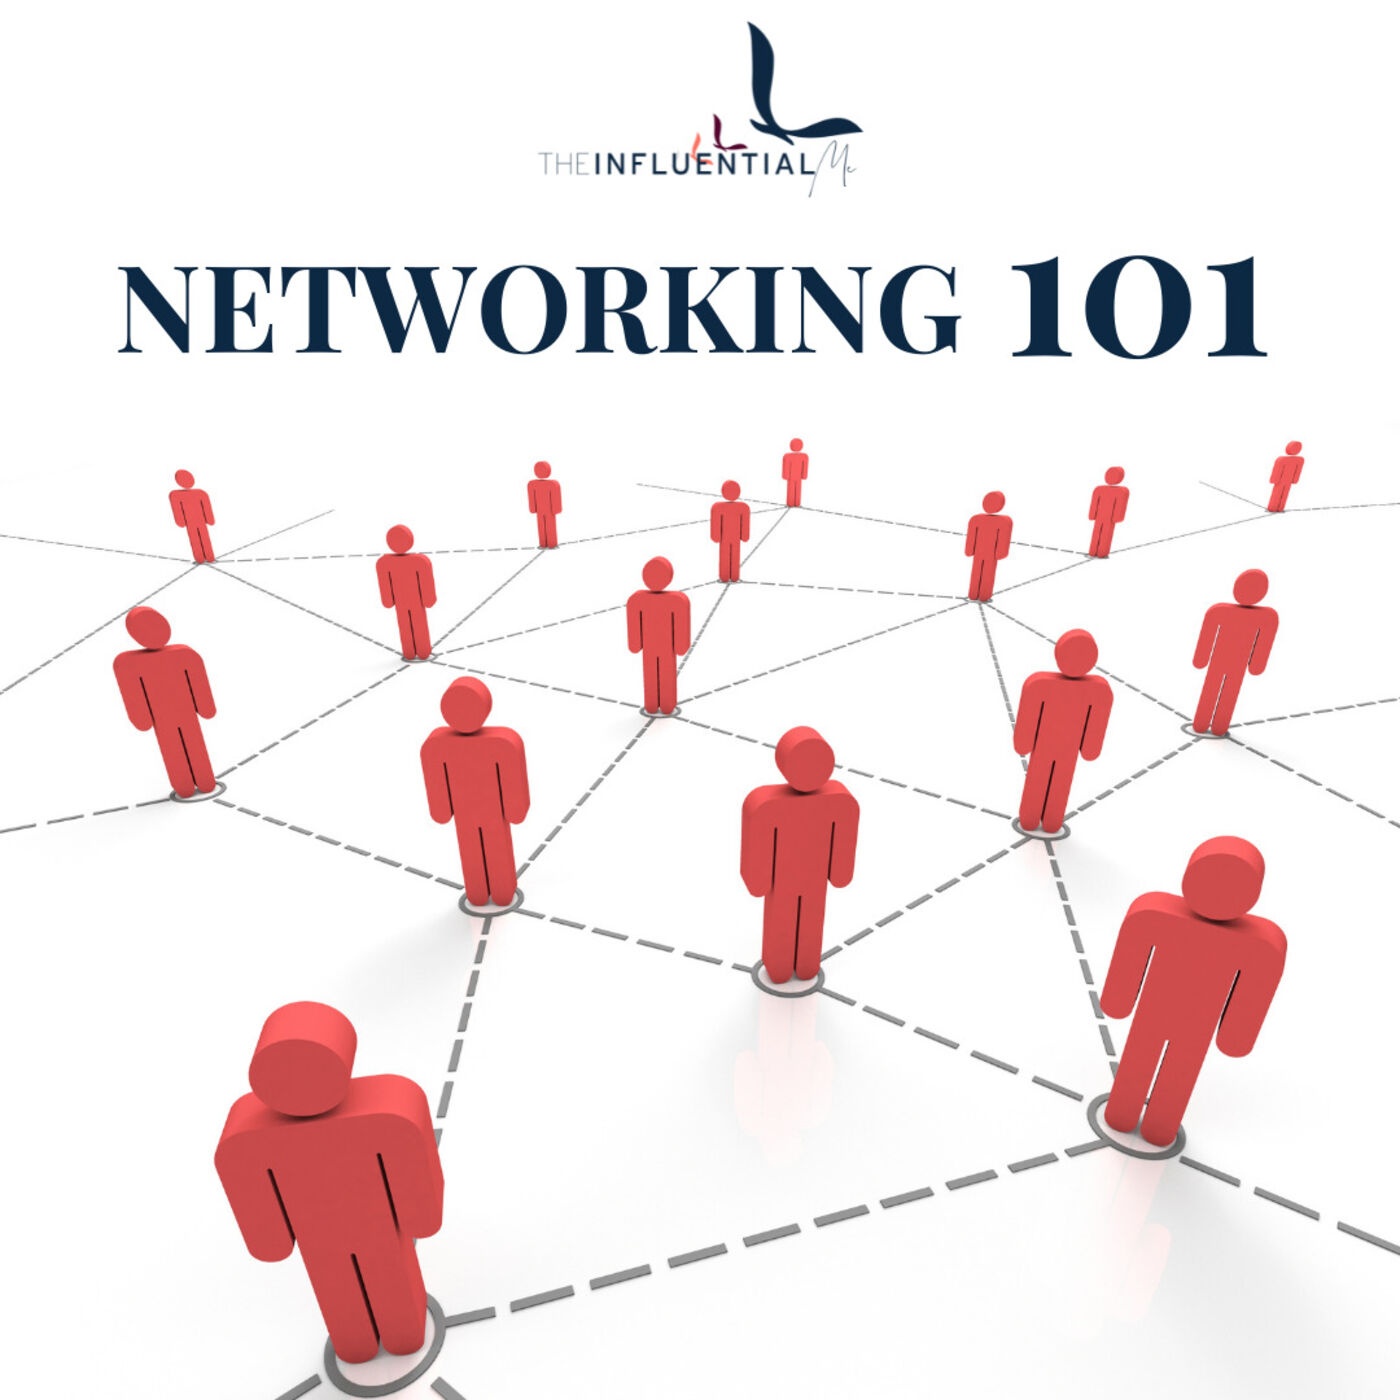 Networking 101 - How to Up Your Networking Game